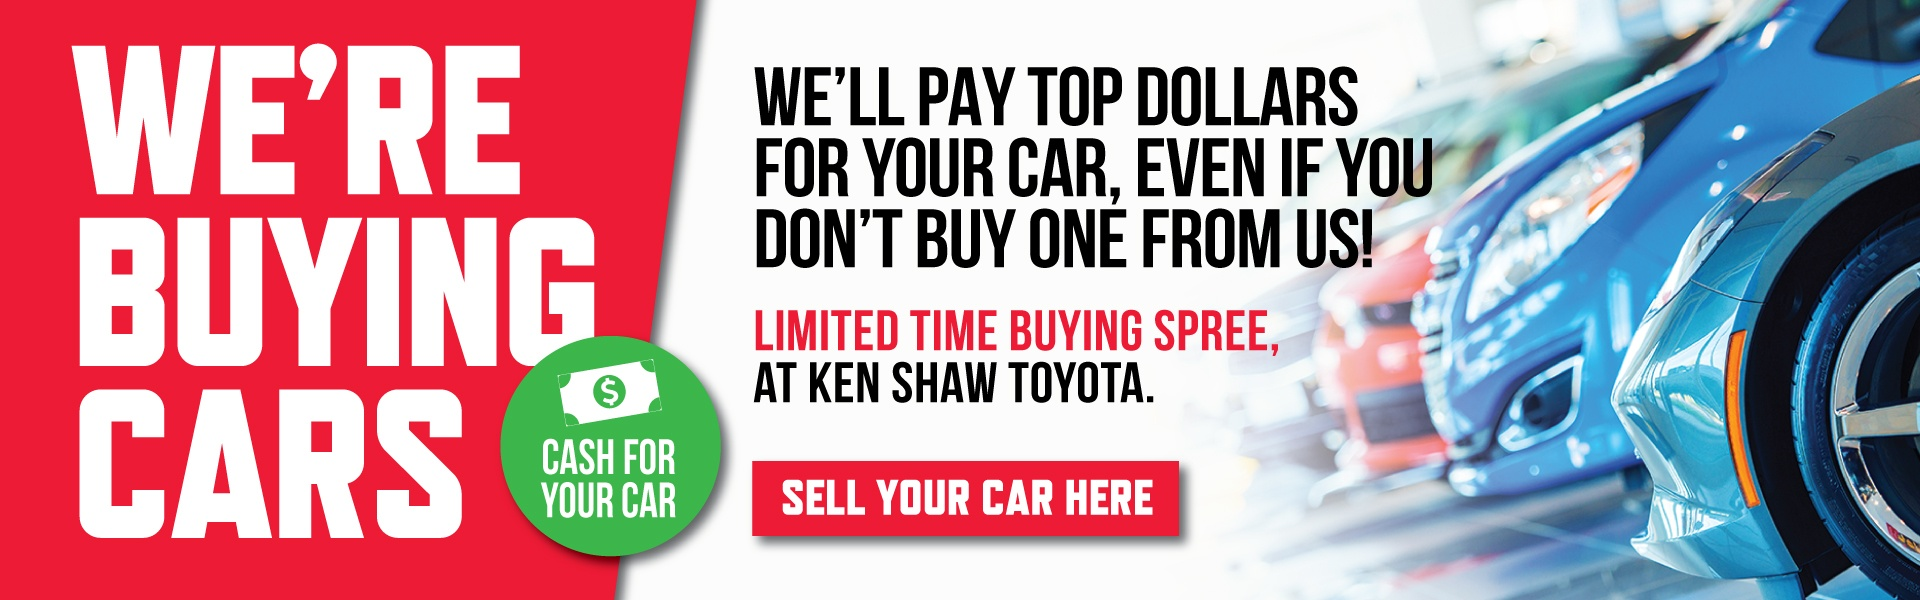 quick cash for cars toronto ontario at Ken Shaw Toyota